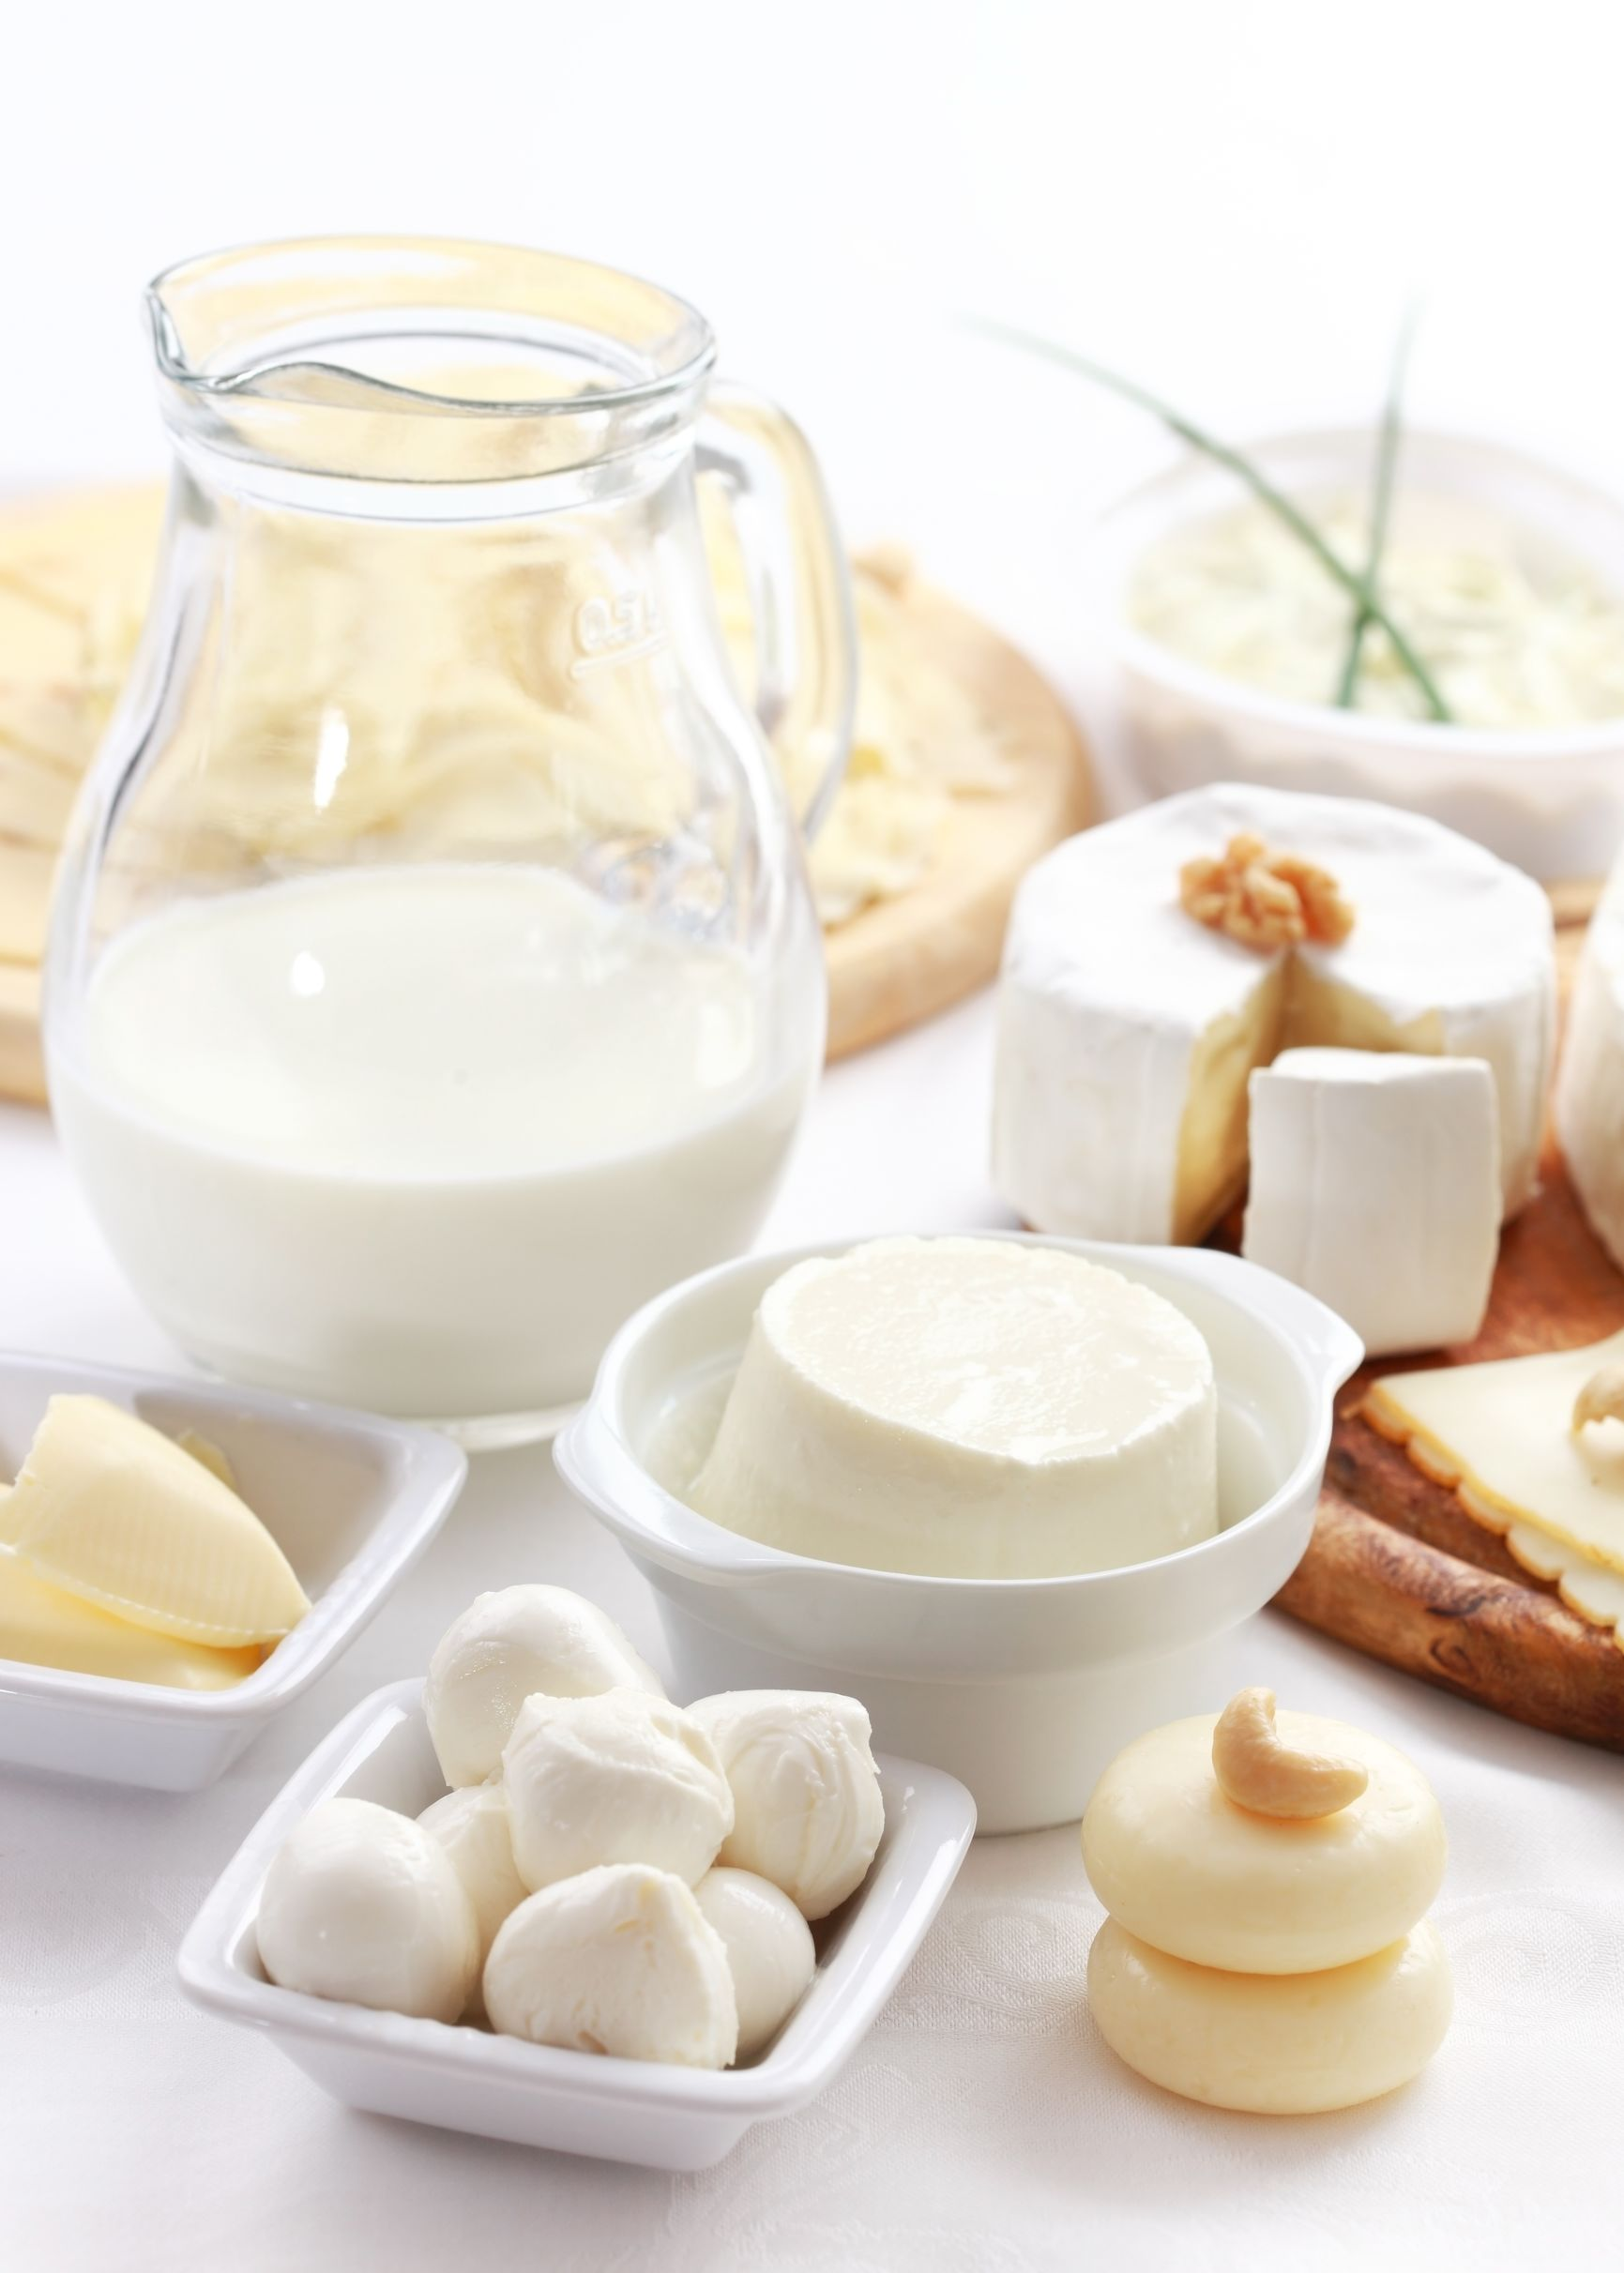 Increased intake of dairy could reduce mortality and cardiovascular disease